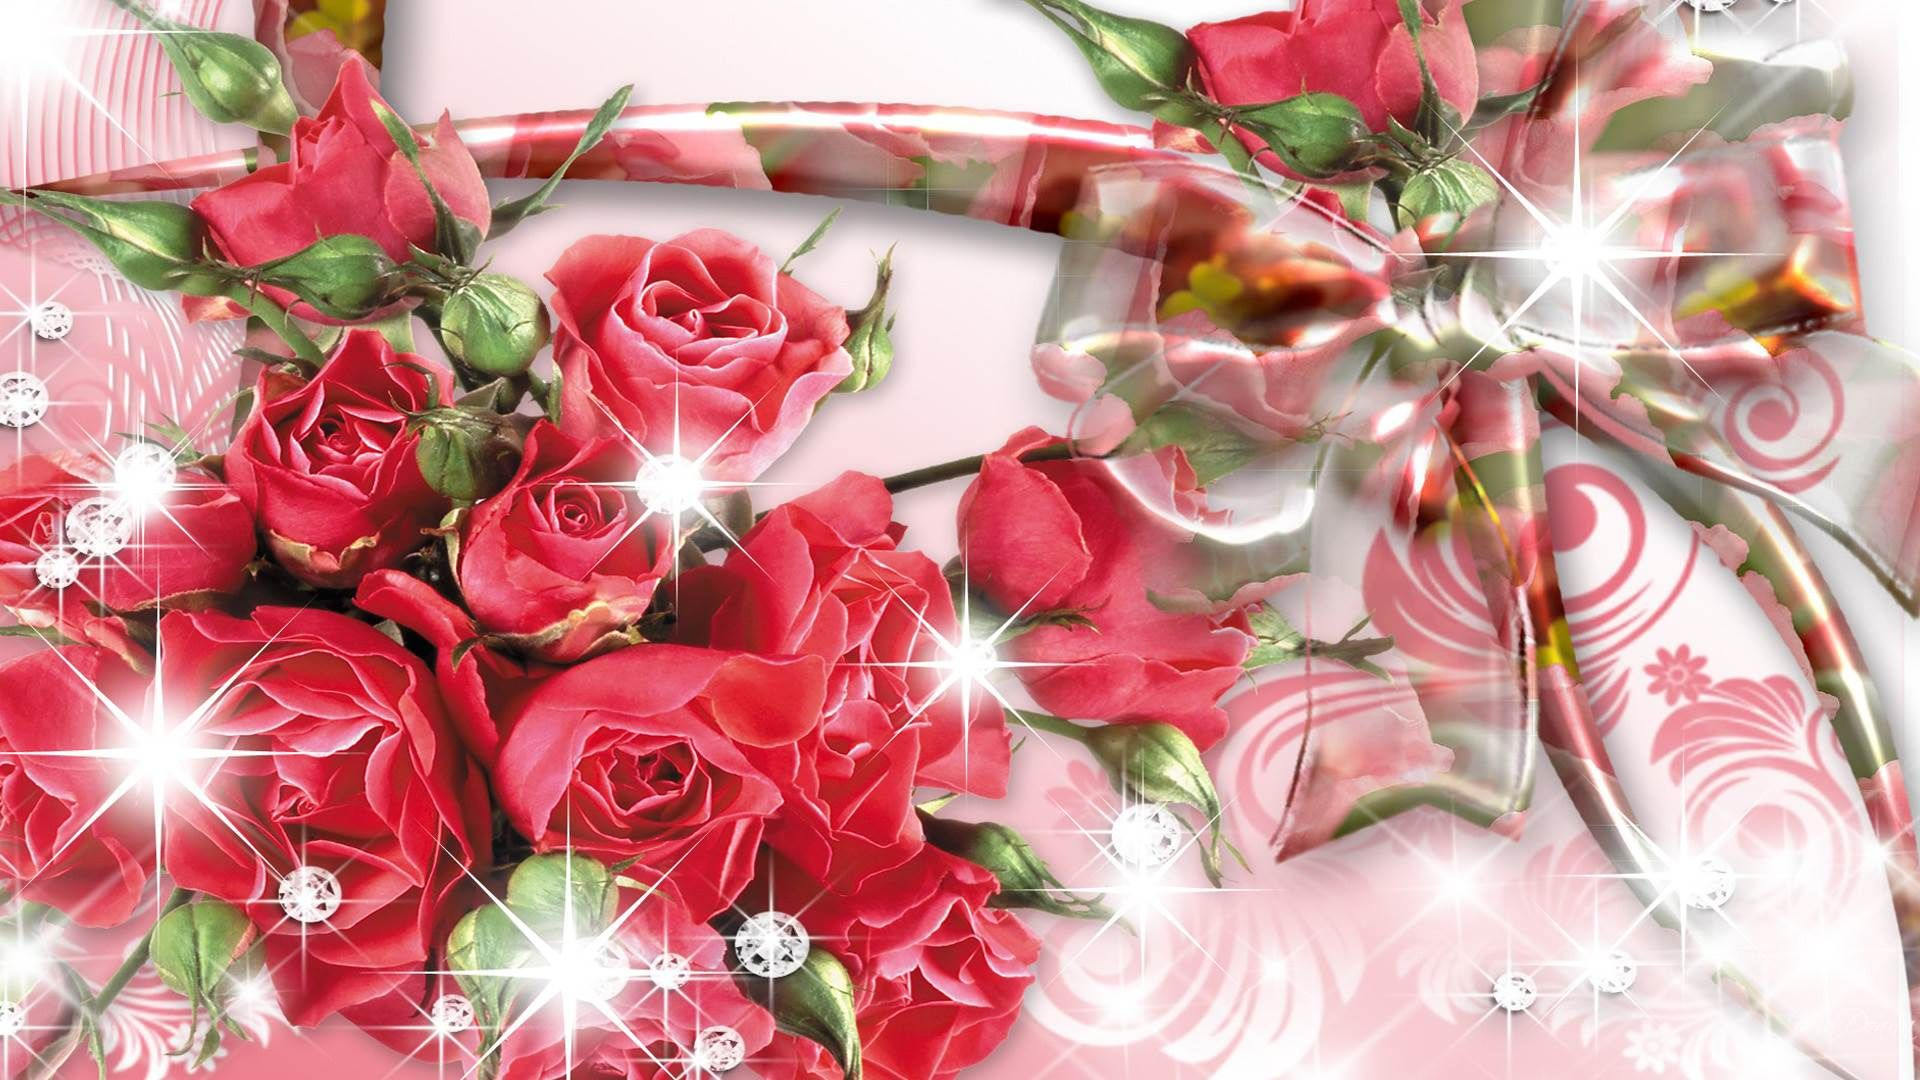 rose hd wallpapers backgrounds wallpaper 1600a—1200 rose image adorable wallpapers